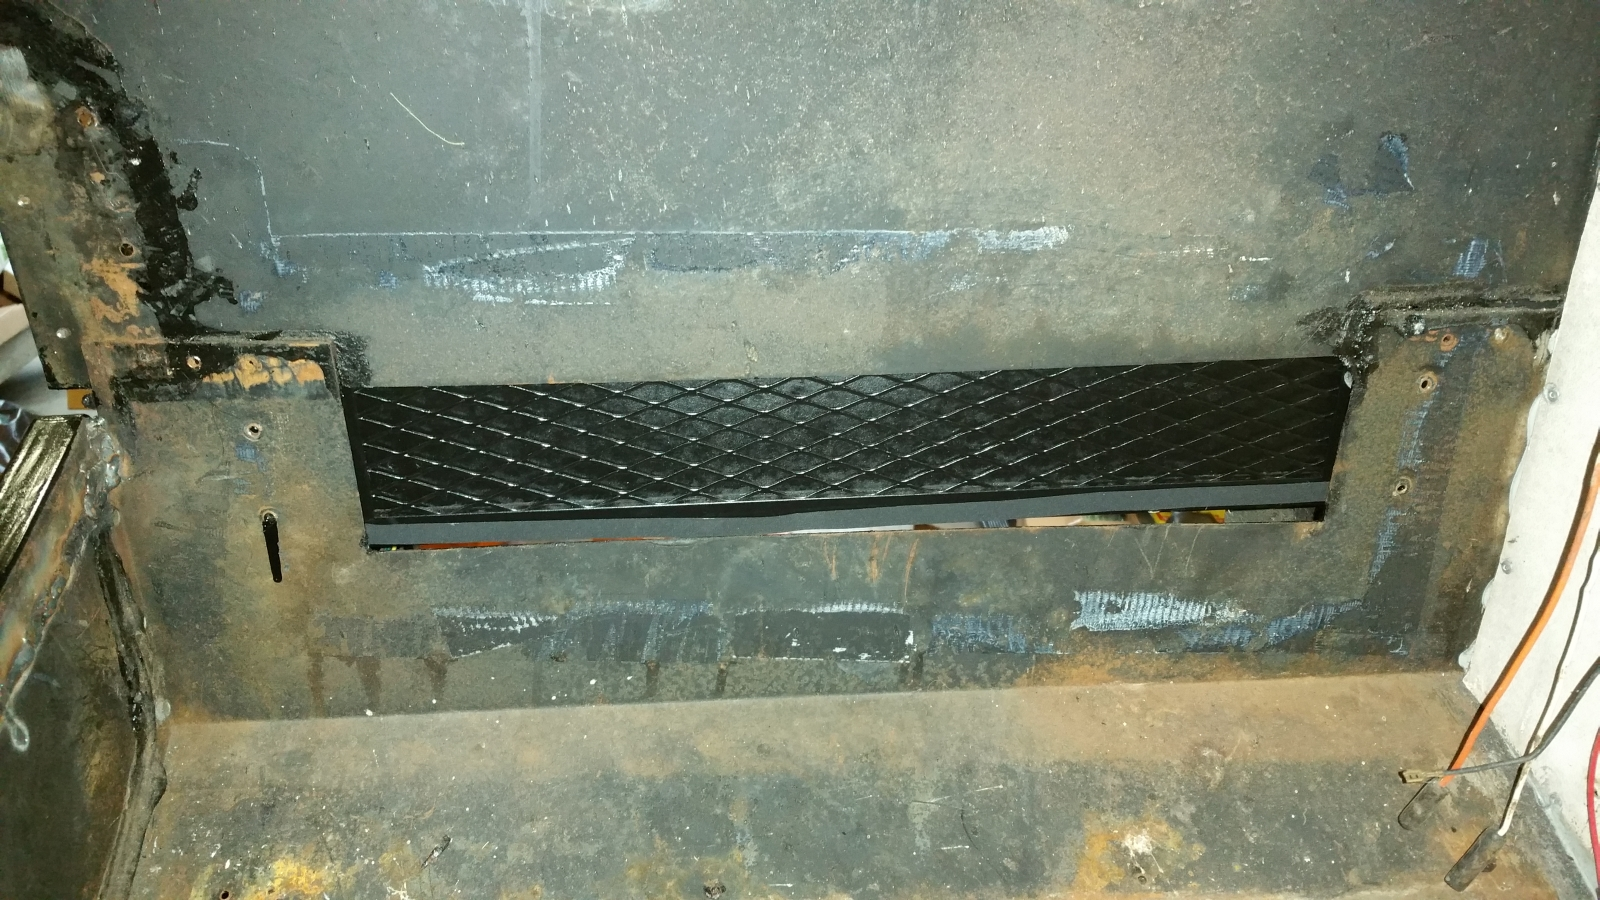 Click image for larger version  Name:74-argosy-evaporator-box-poor-fit-1.jpg Views:53 Size:1.06 MB ID:266203